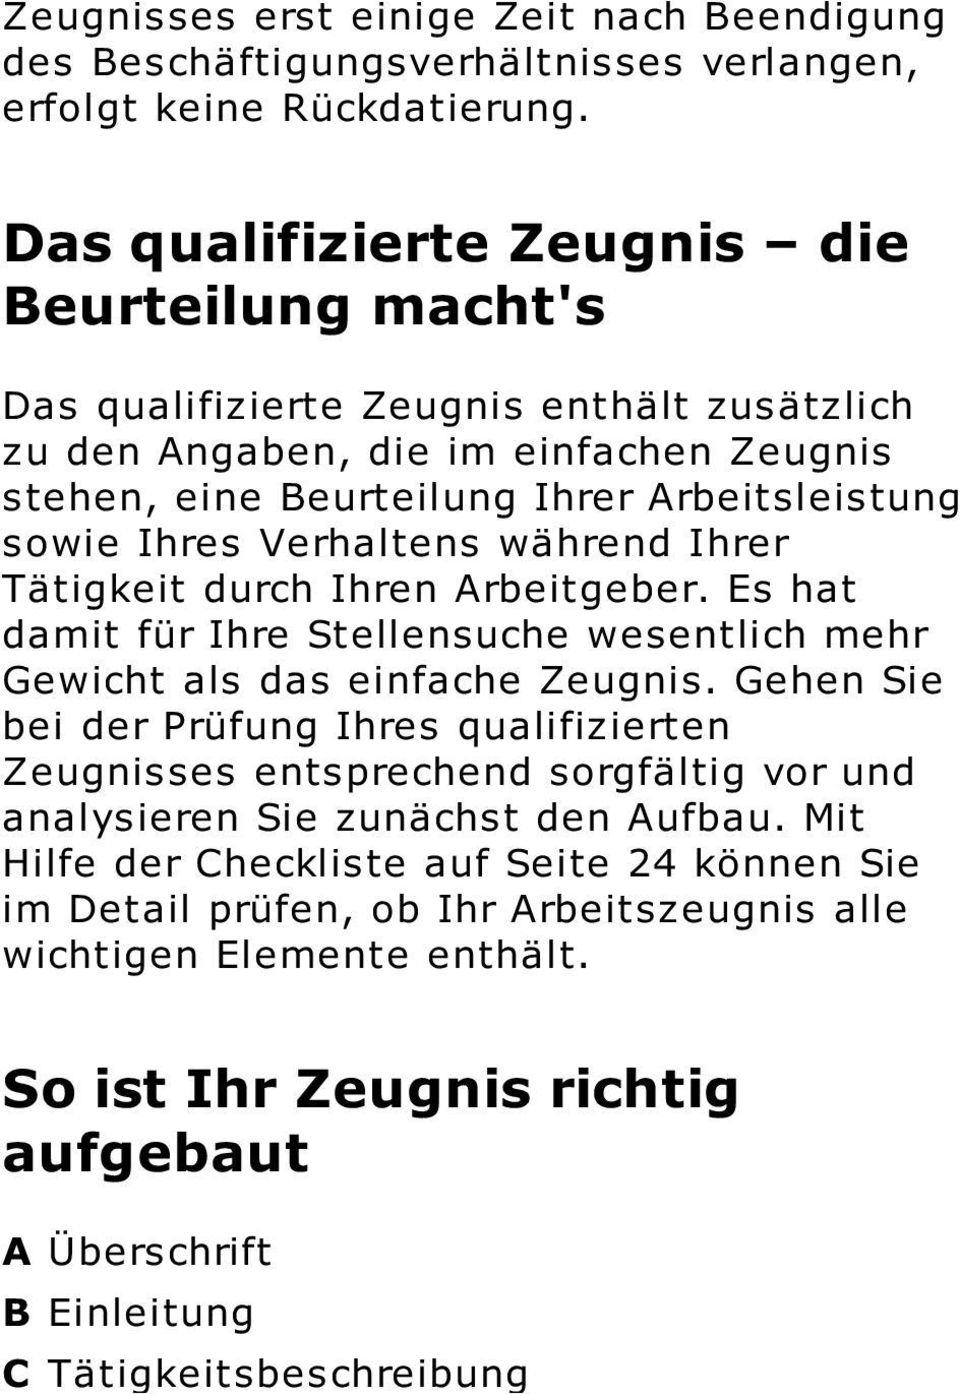 Wunderbar Steuerassistent Lebenslauf Bilder - Entry Level Resume ...